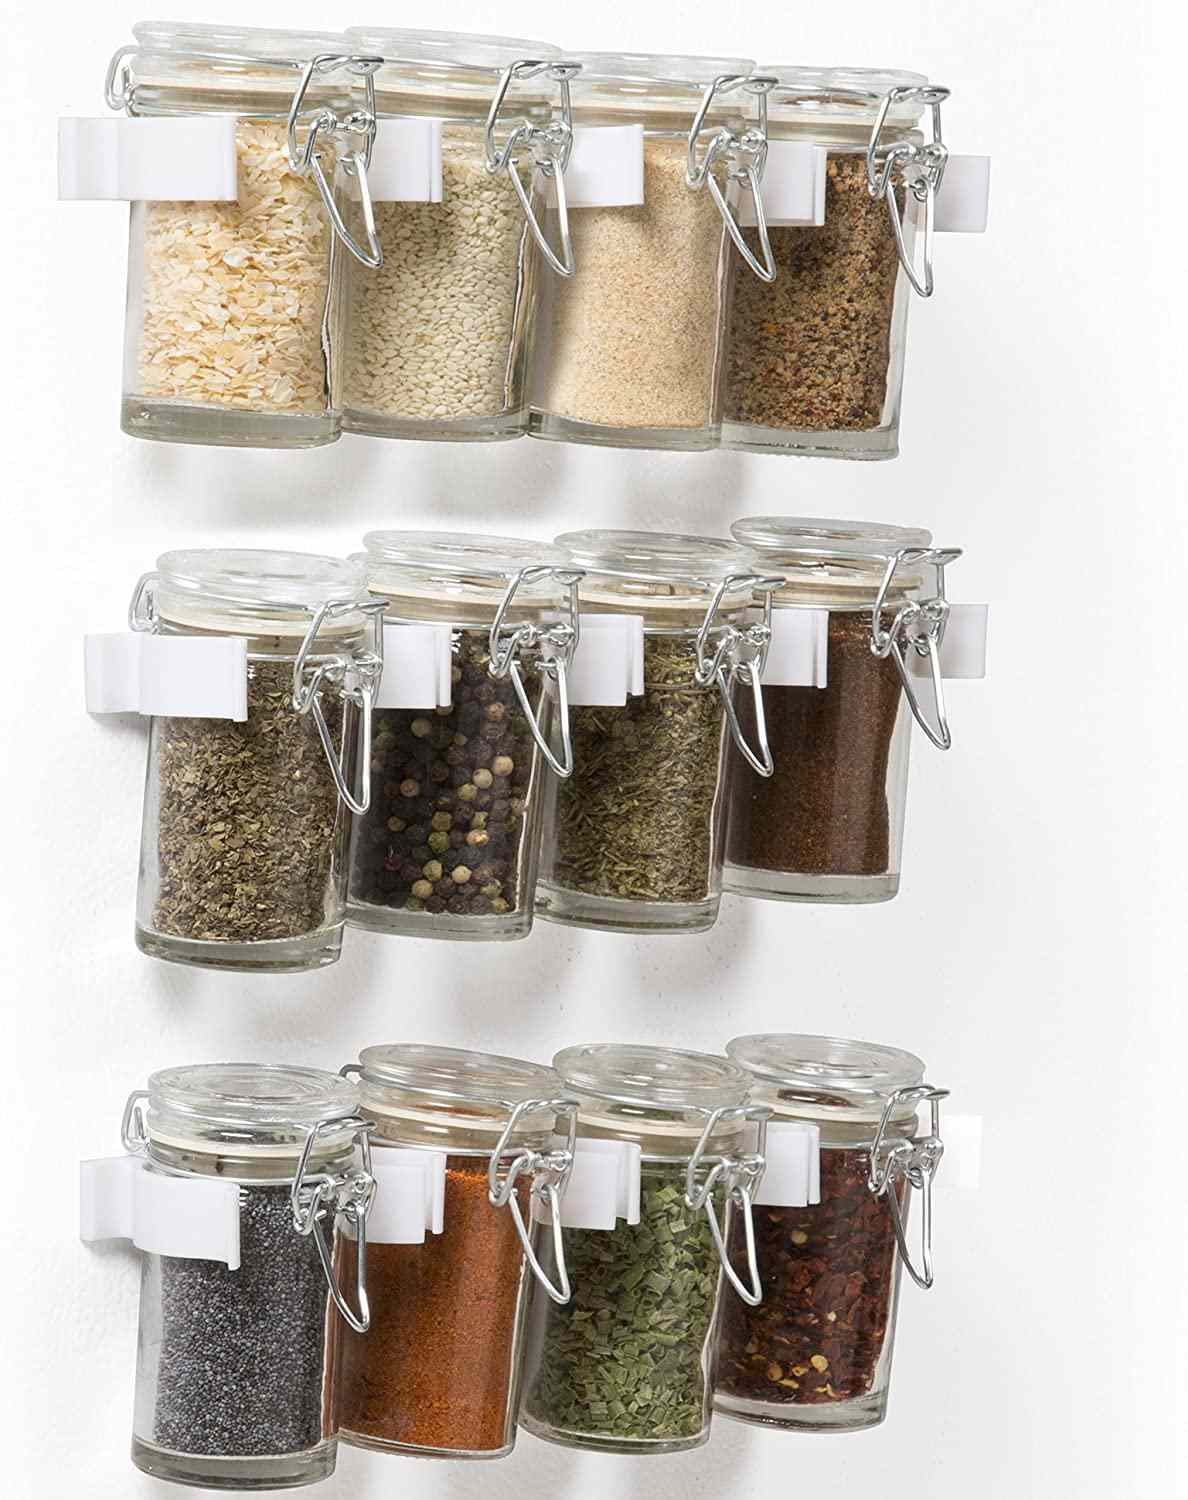 best magnetic spice racks and jars